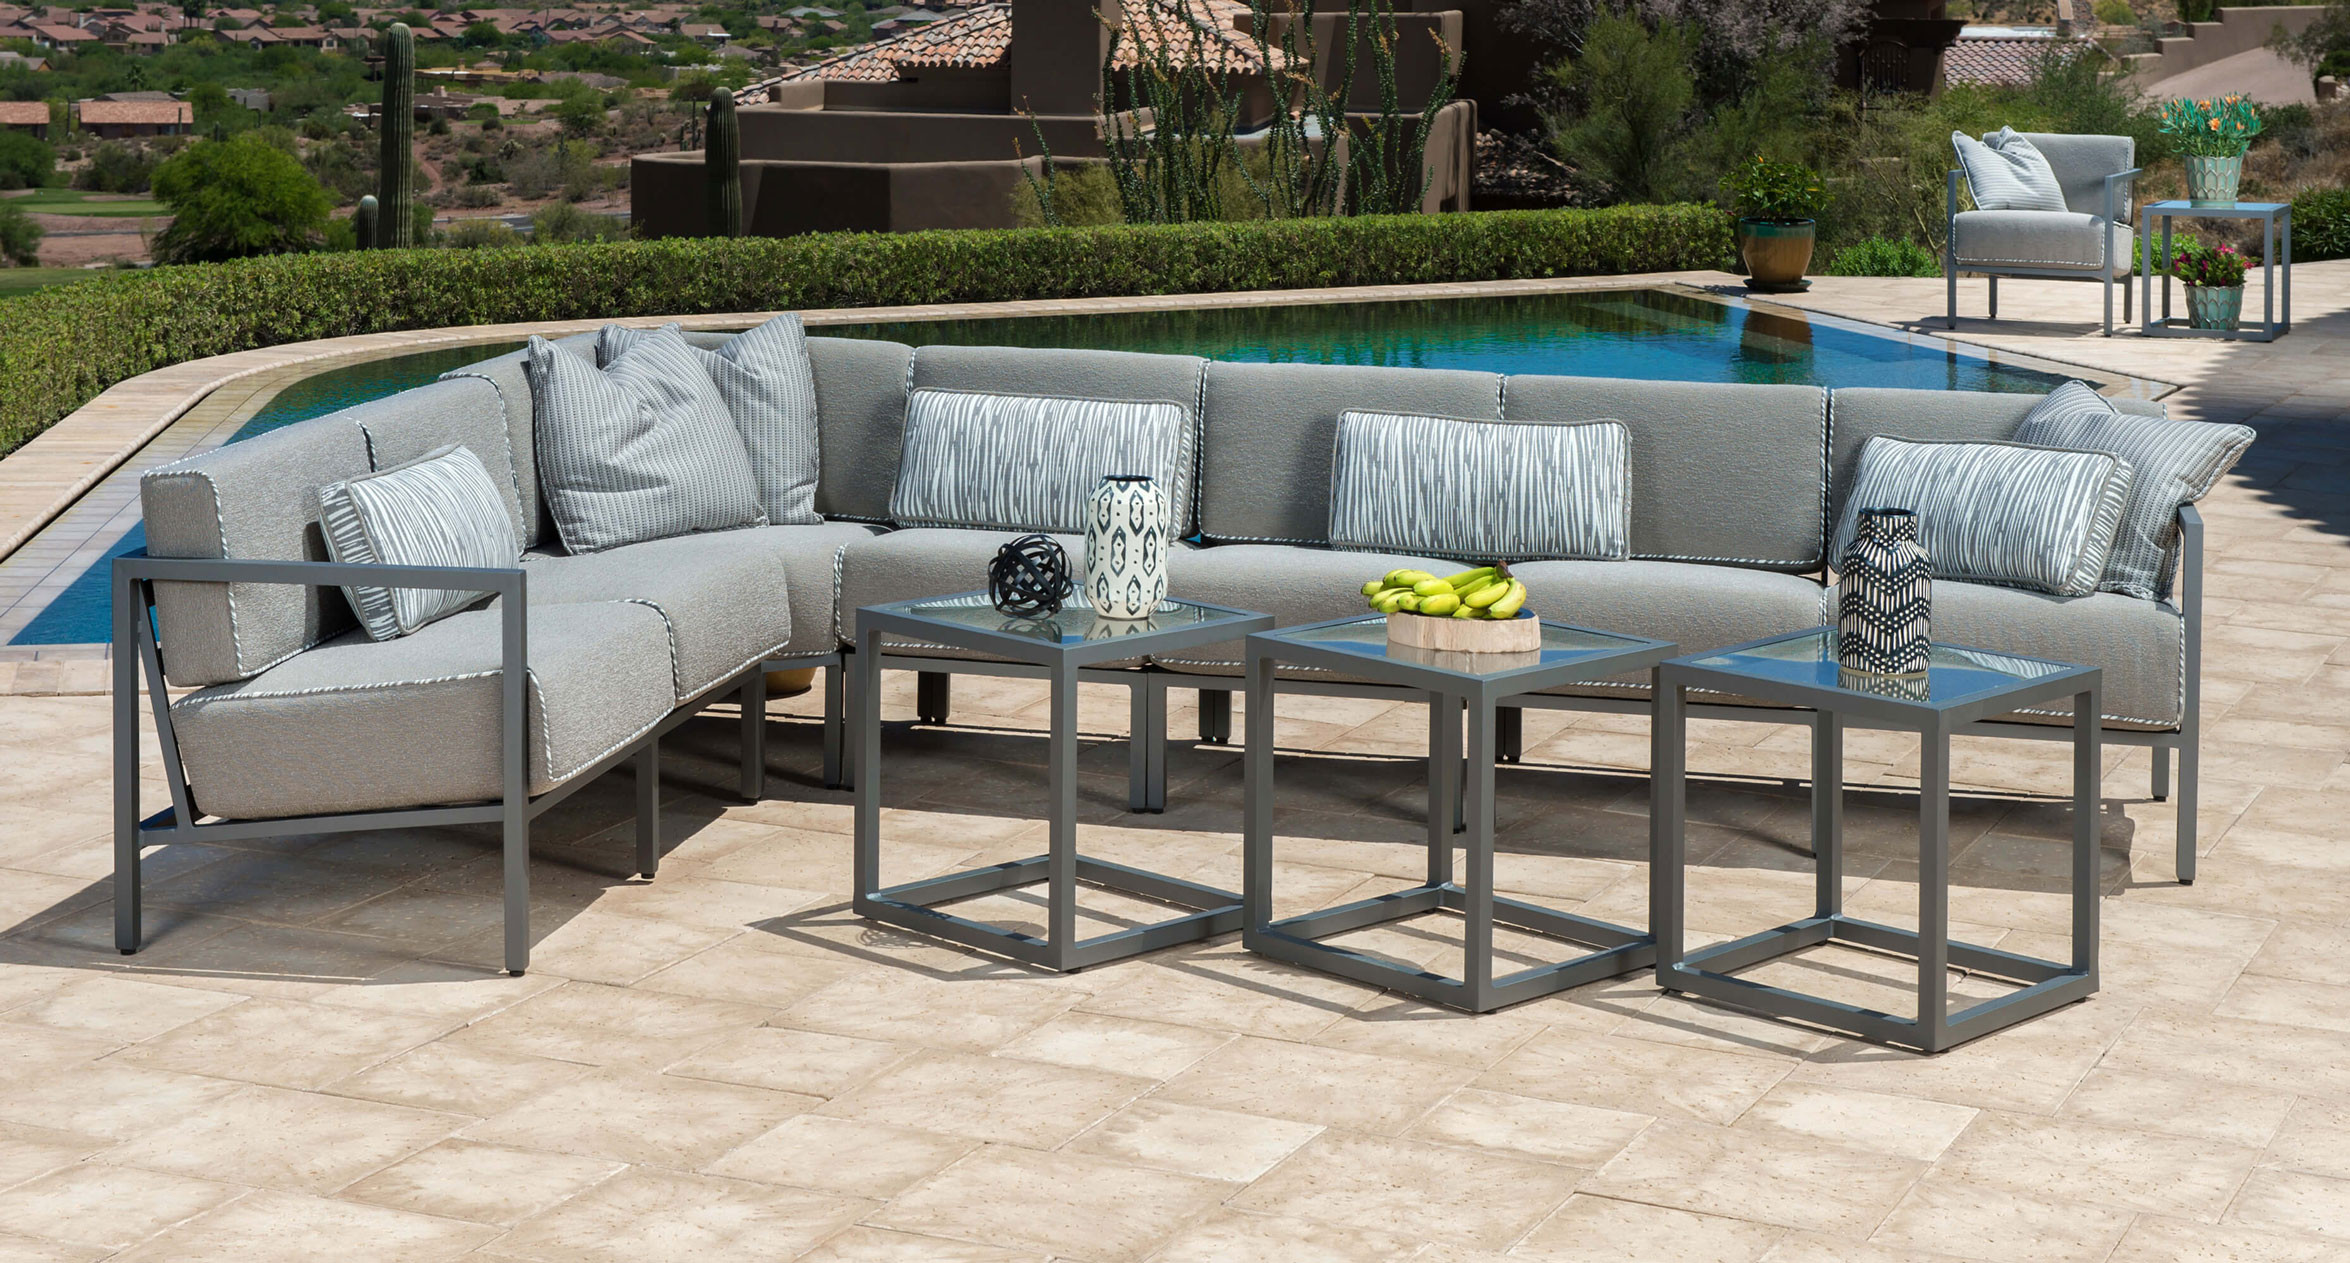 Best ideas about Patio Furniture Clearance Costco . Save or Pin Outdoor Furniture Bay Area Home Design And Decor Patio Now.